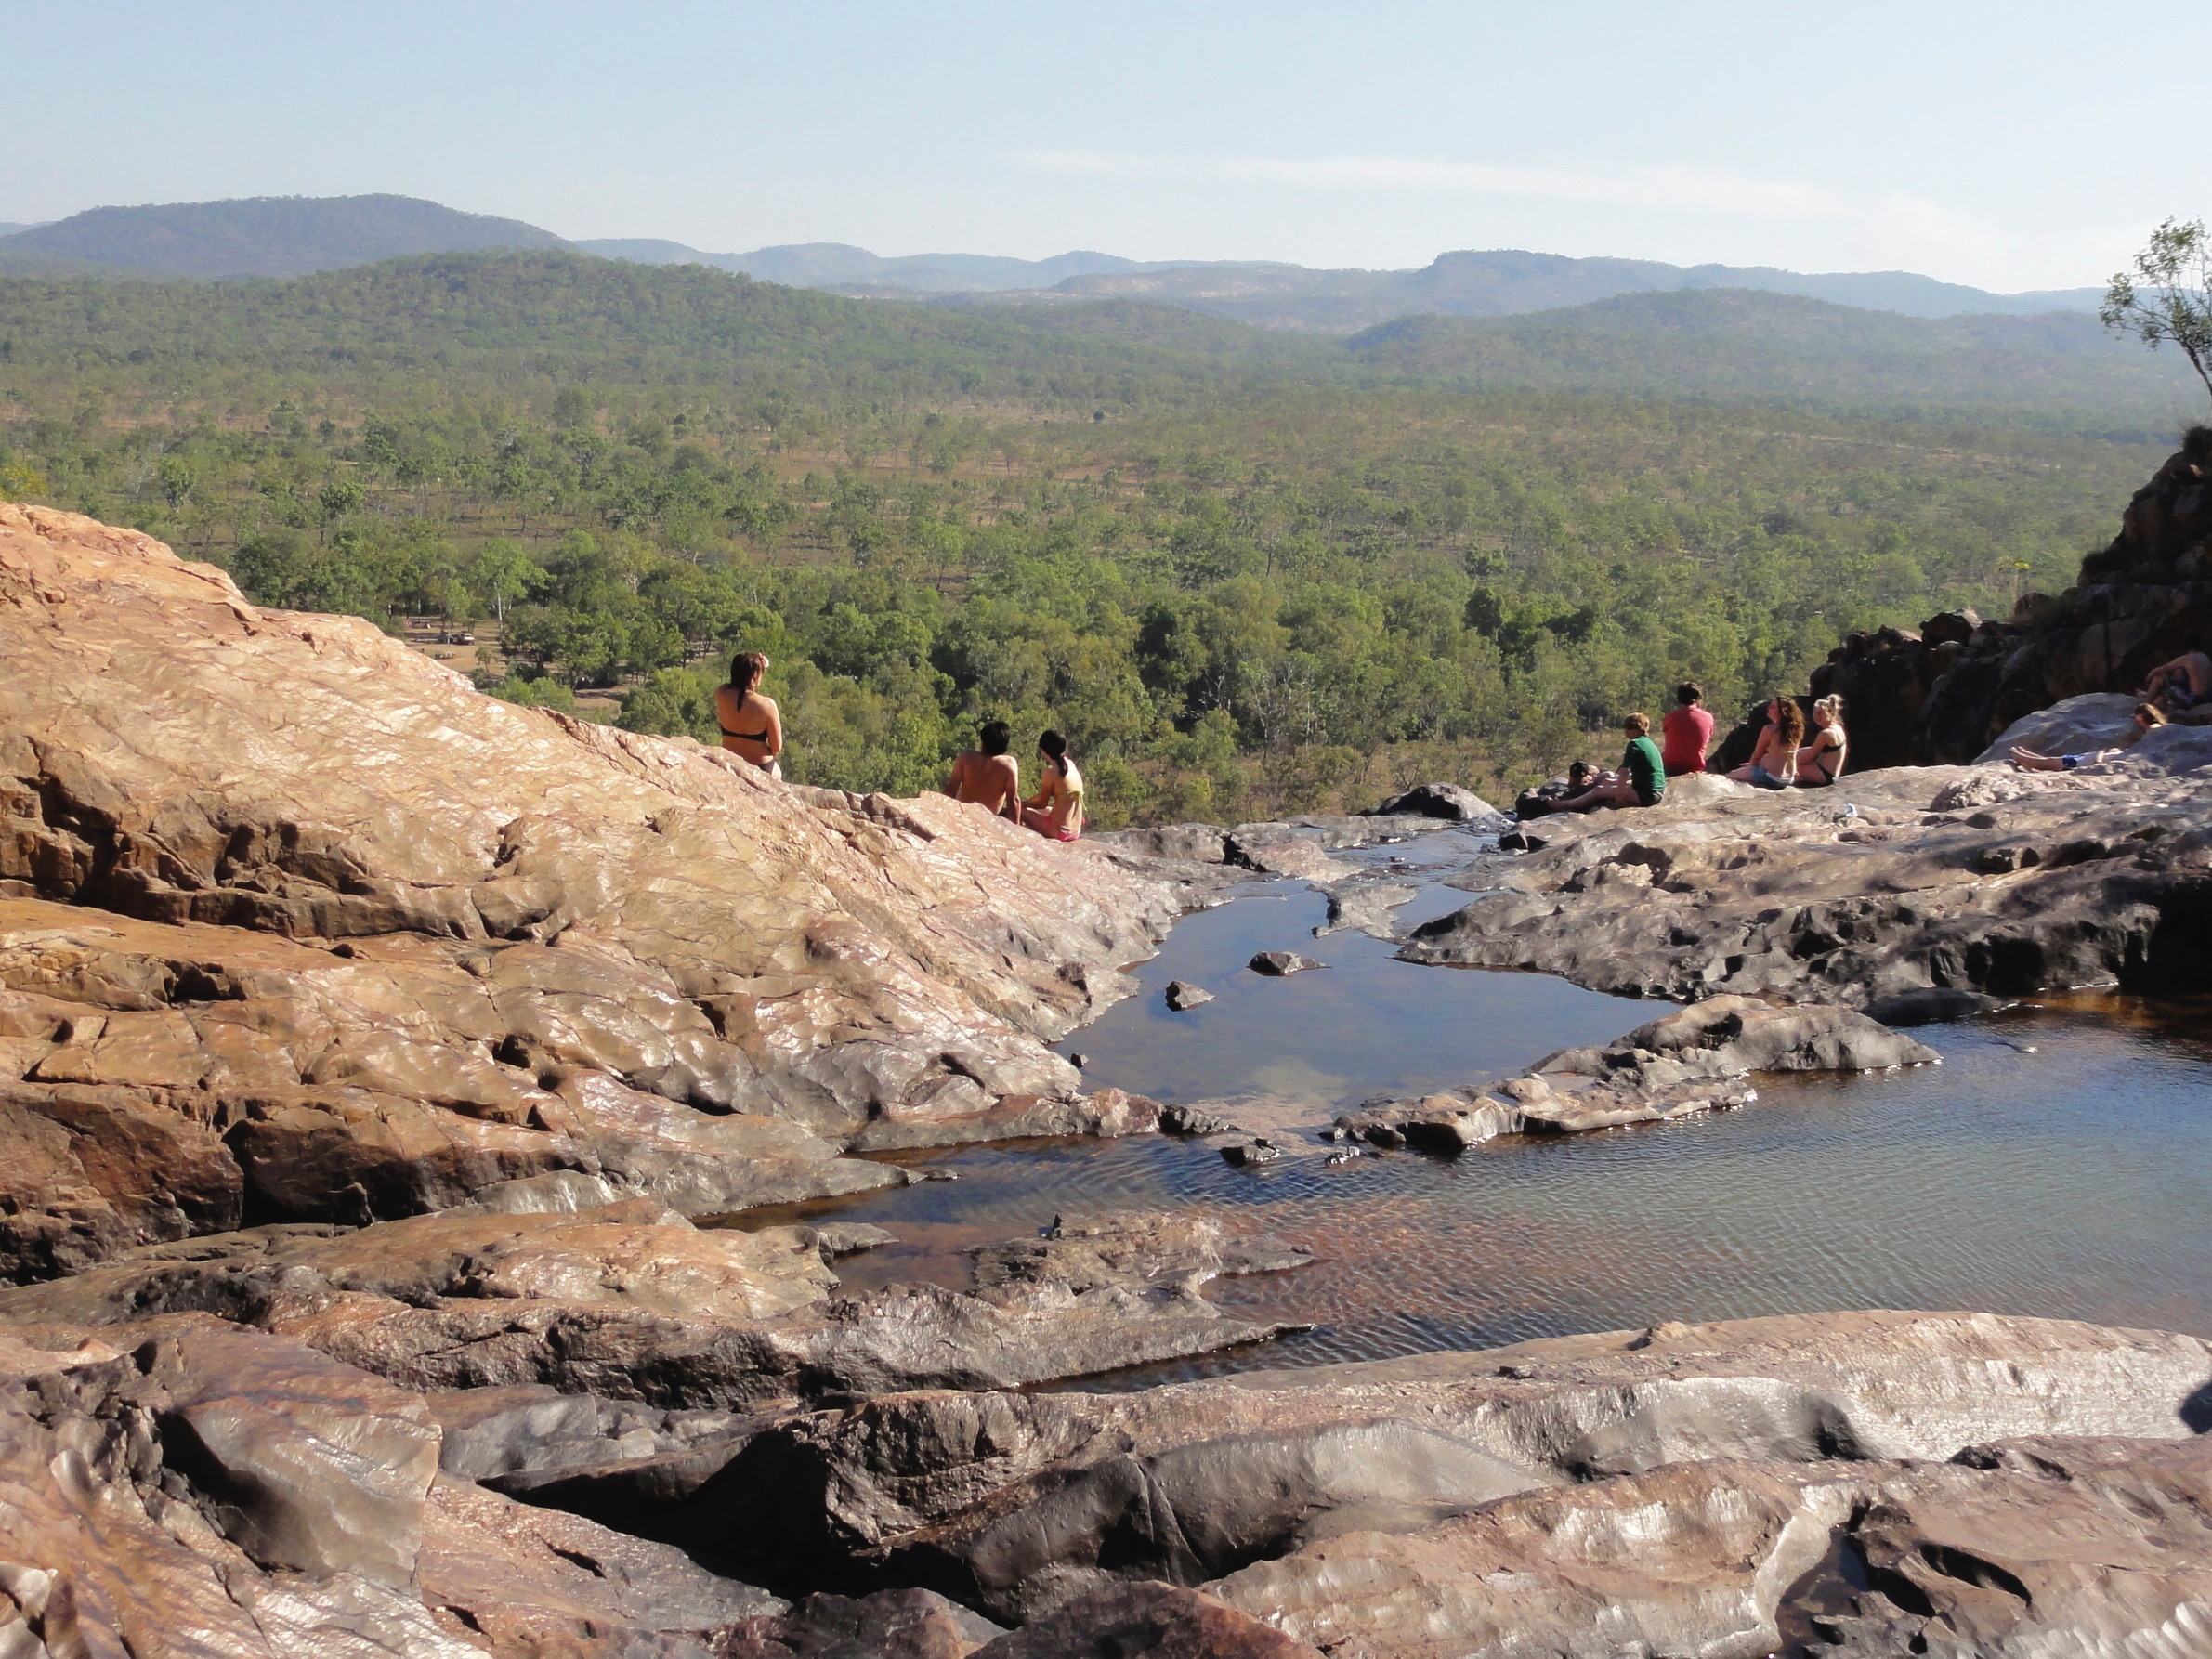 This is the incredible Gunlom Falls in Kakadu National Park! Well, well, well, it's a pretty spectacular spot as you can see. That's me sitting on the far left taking in the view. It's quite a steep hike to the top but then you're rewarded with a series of pools to cool down in. Below is a large pool that the falls drop into and it's corcodile territiory too, so it pays to be very cautious.